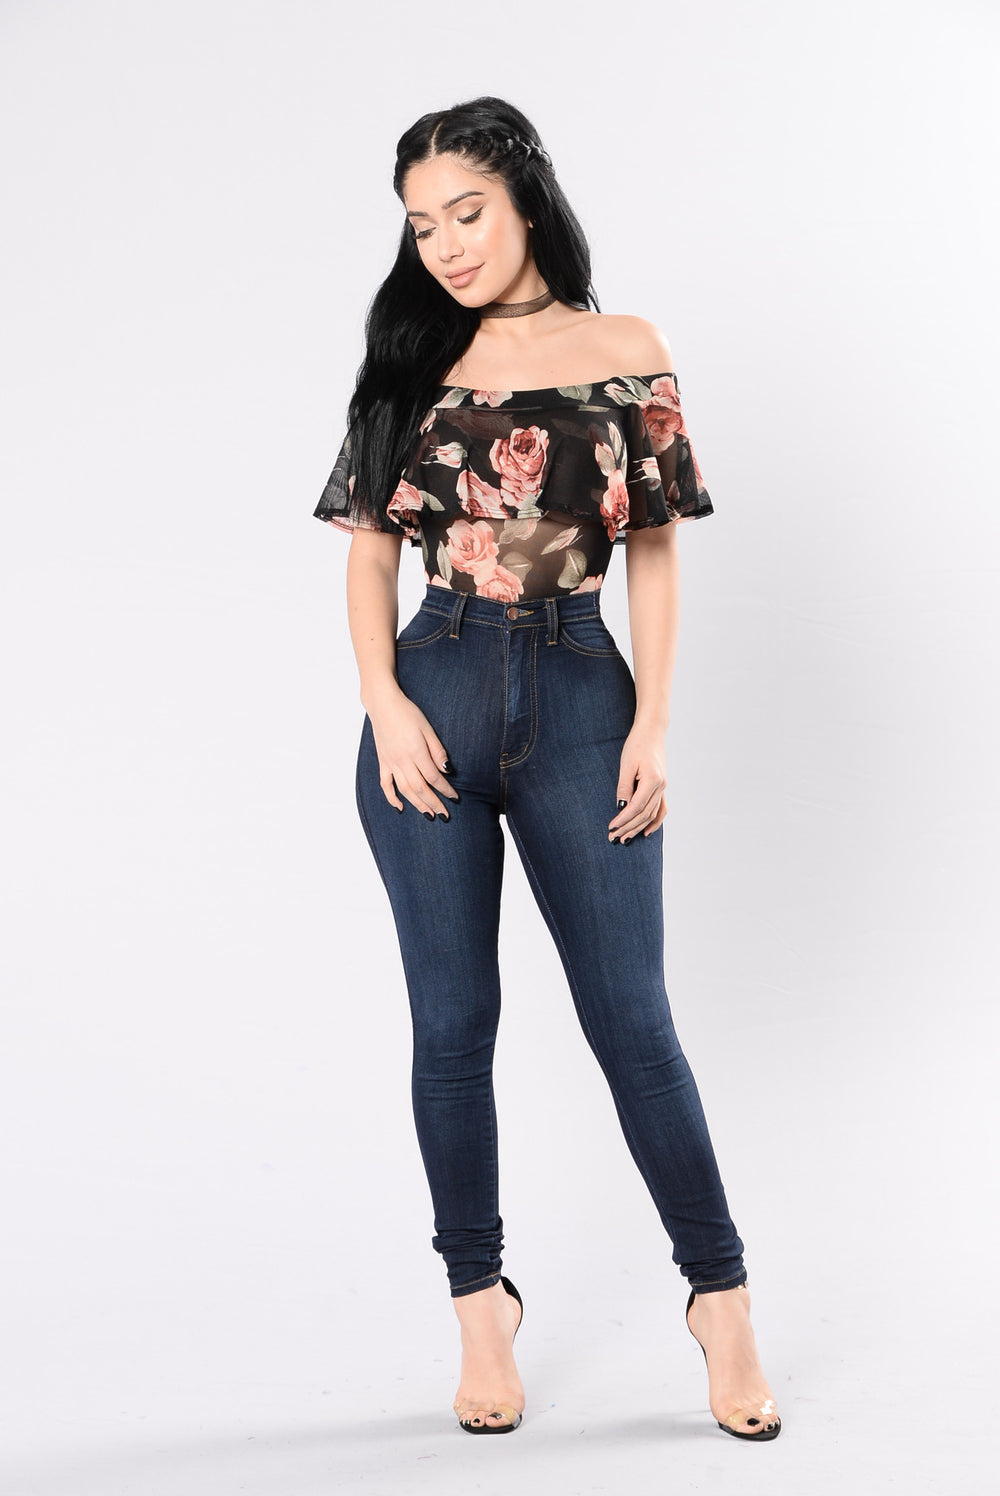 Wild Flowers Bodysuit - Black